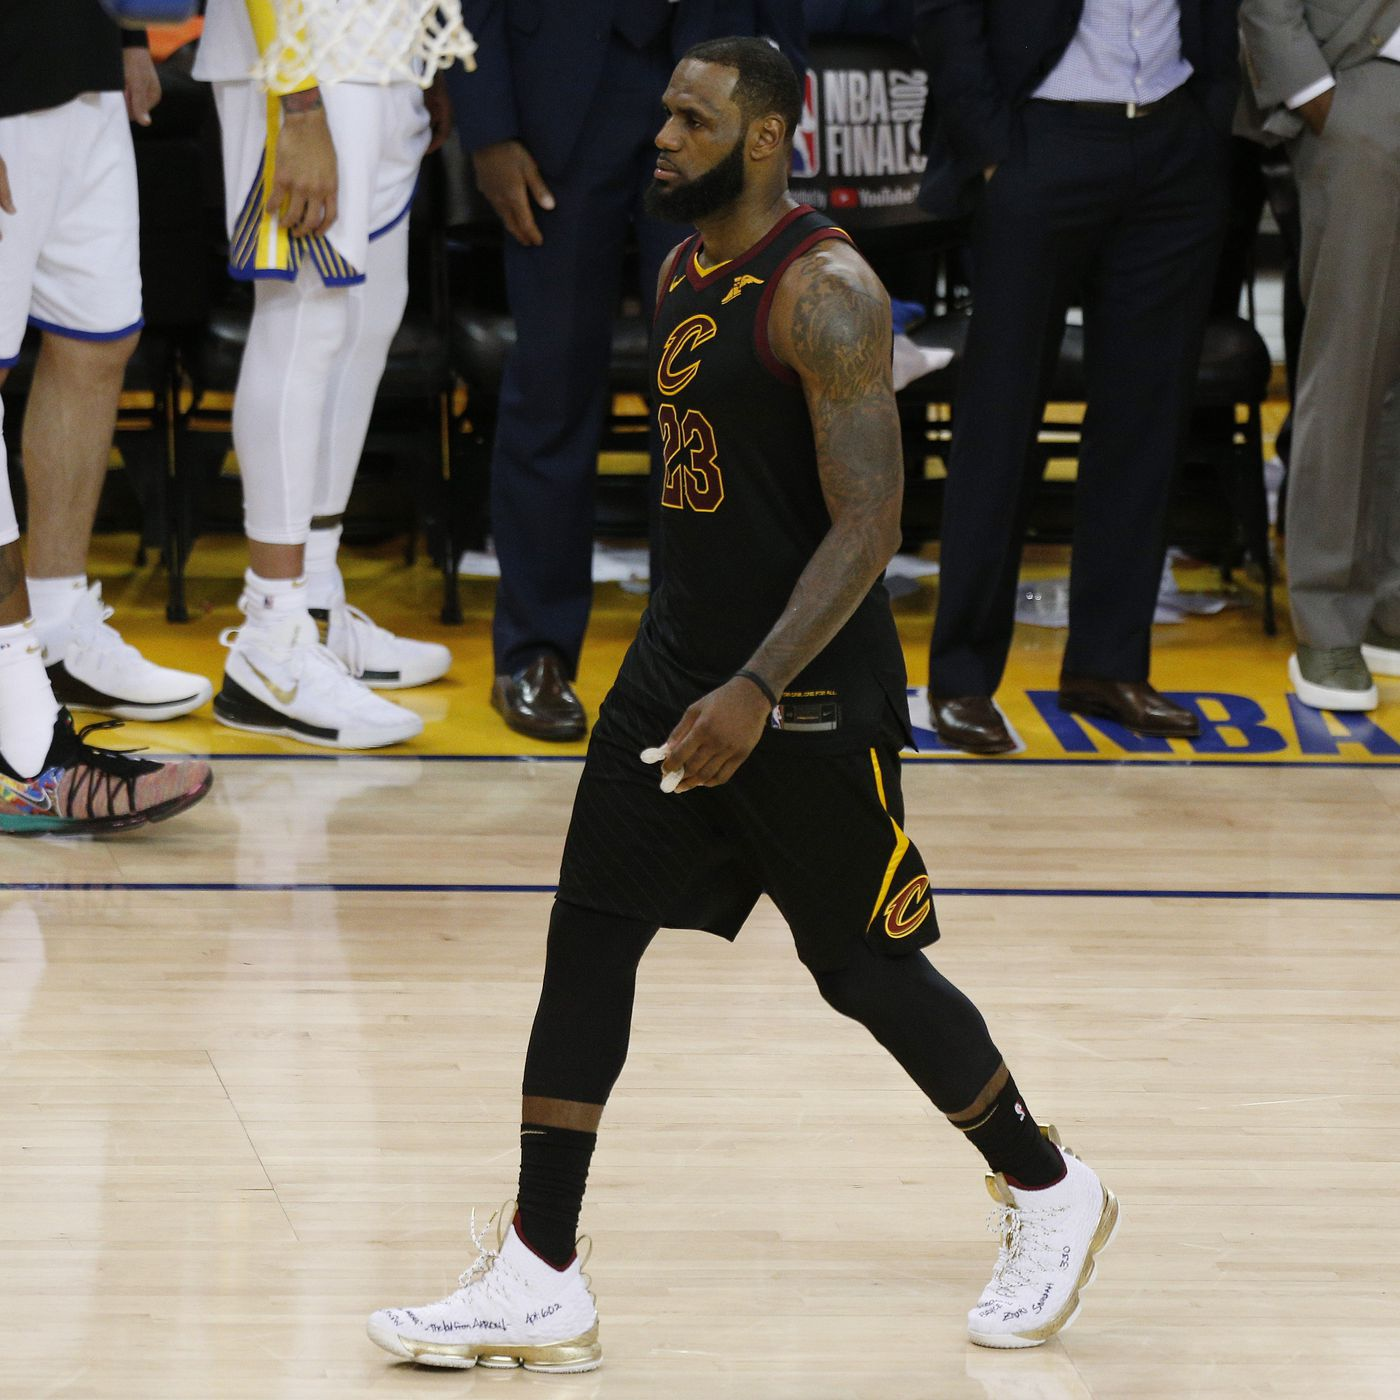 The Cavs just wasted a LeBron James 51-point game in the NBA Finals ... 7fbb3631e